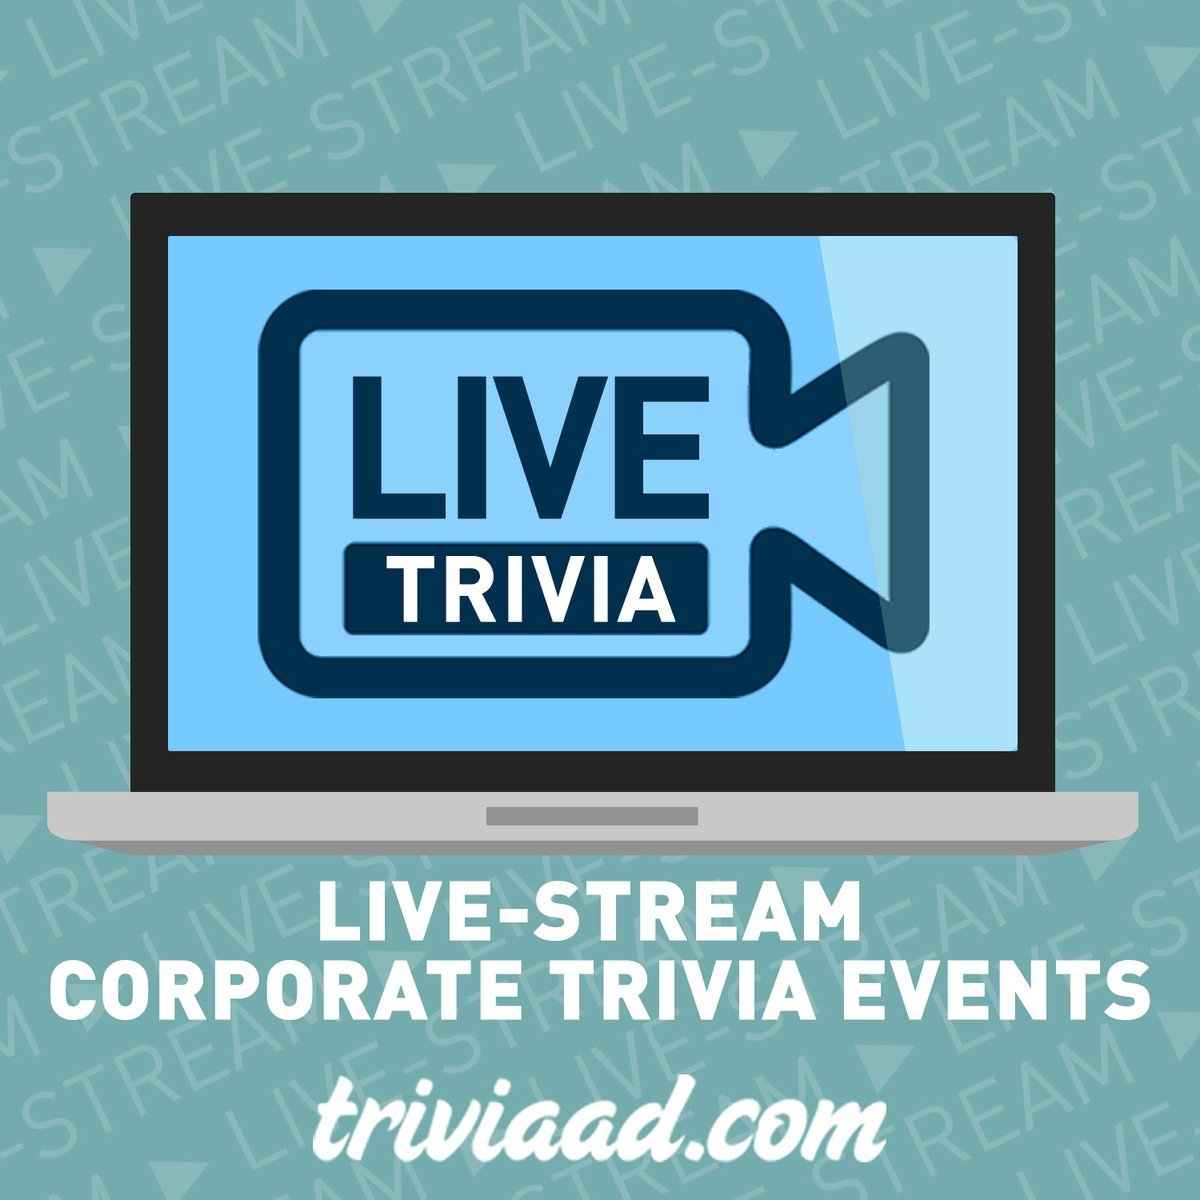 We're here to host your #virtual #trivia event for your #corporate, private, #birthday or any other reason with your colleagues, friends or family via #ZOOM. Reach out to info [at] https://t.co/fXpcVd7L2K! https://t.co/Q6O9KxqxdA